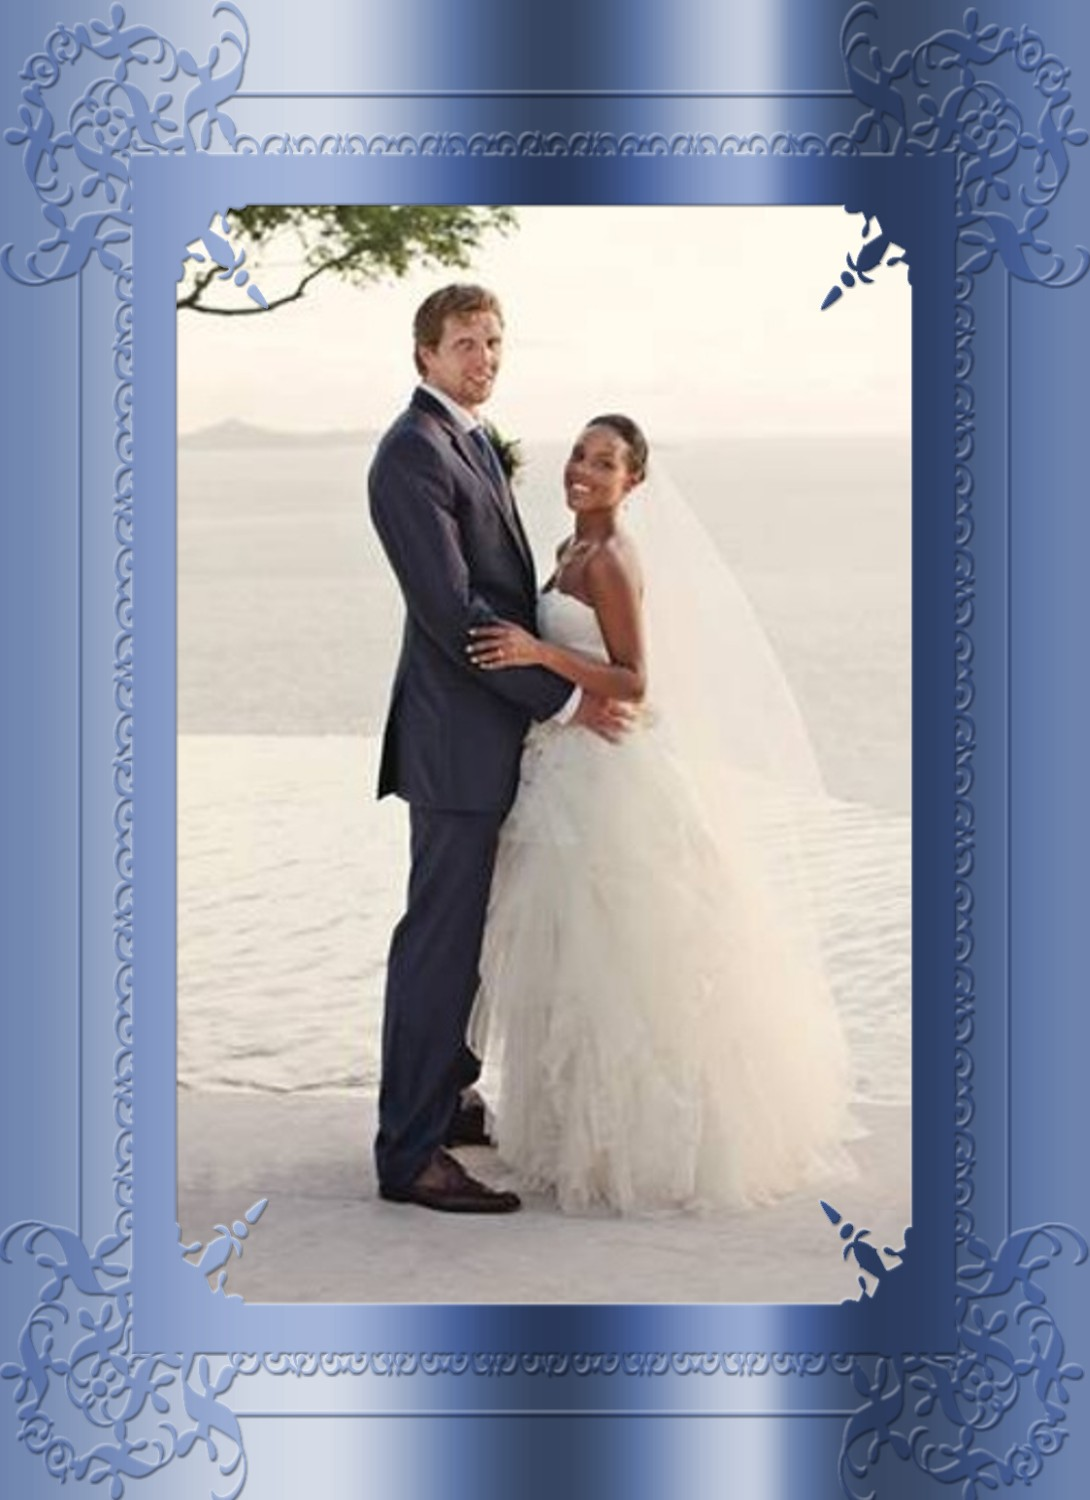 Dirk And Jessica Are Married (For Real This Time)